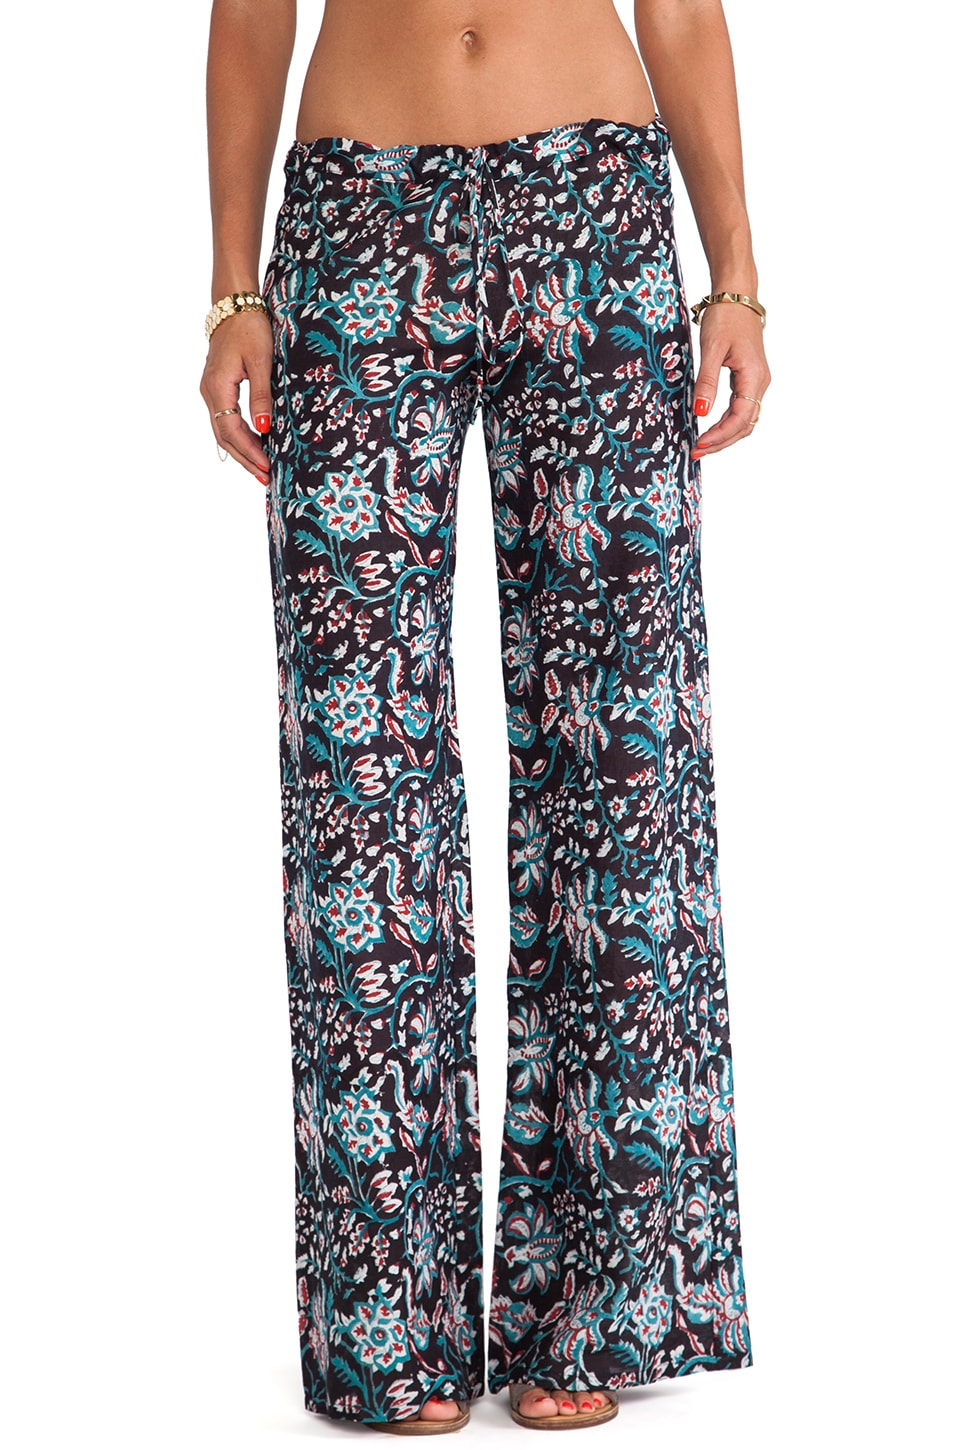 Tysa Drawstring Pants in Black Floral